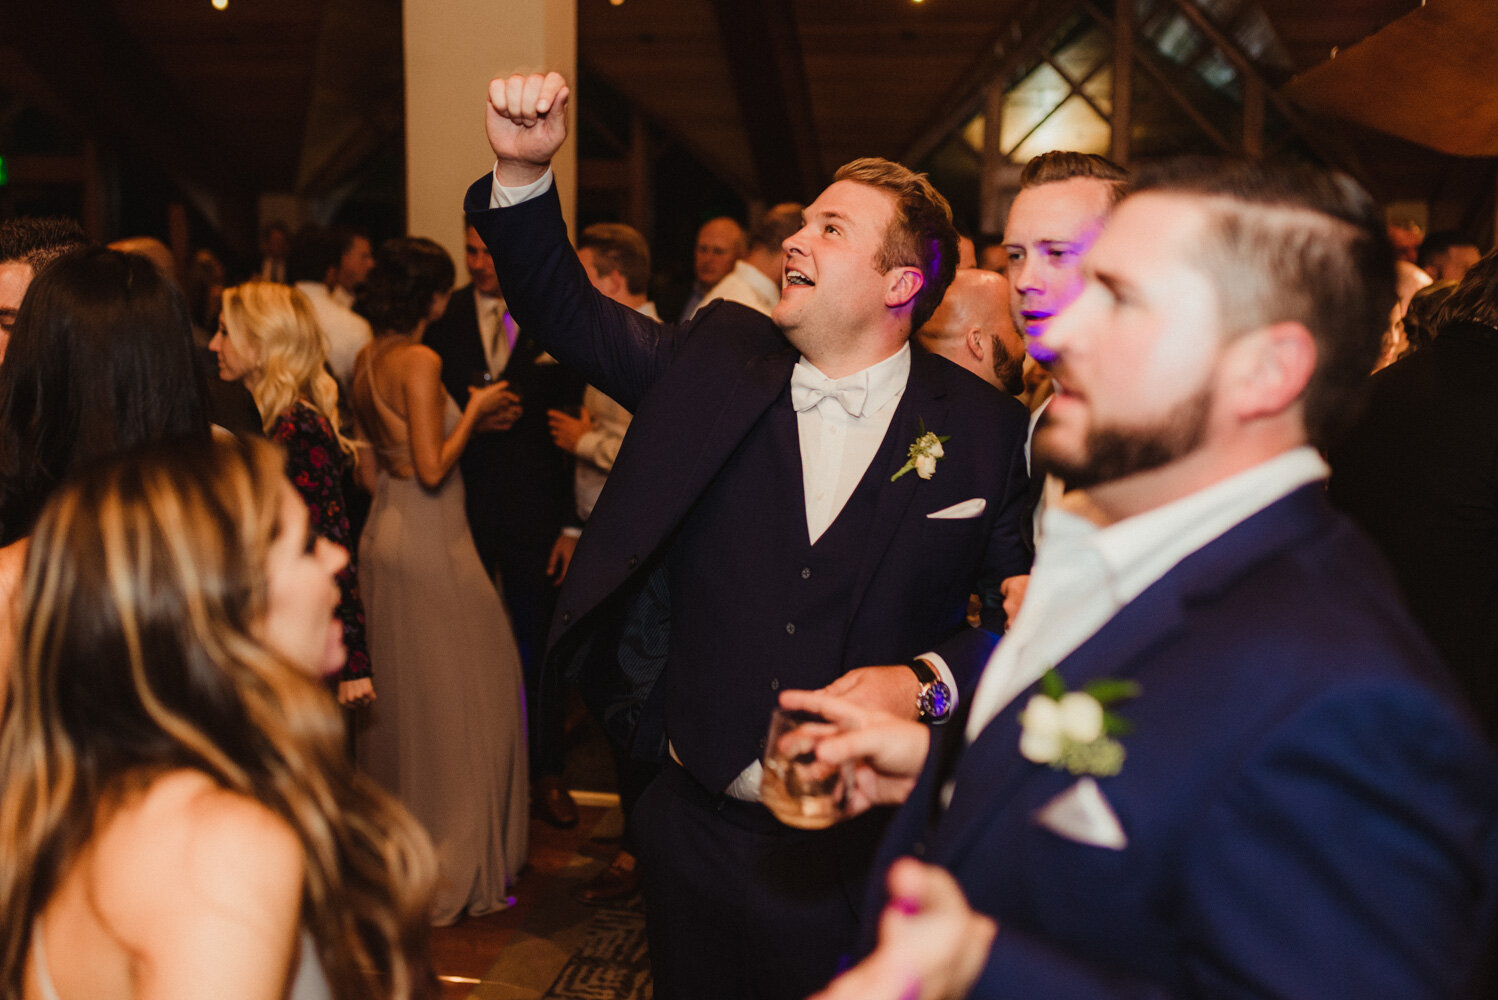 Edgewood wedding, photo of groom partying hard